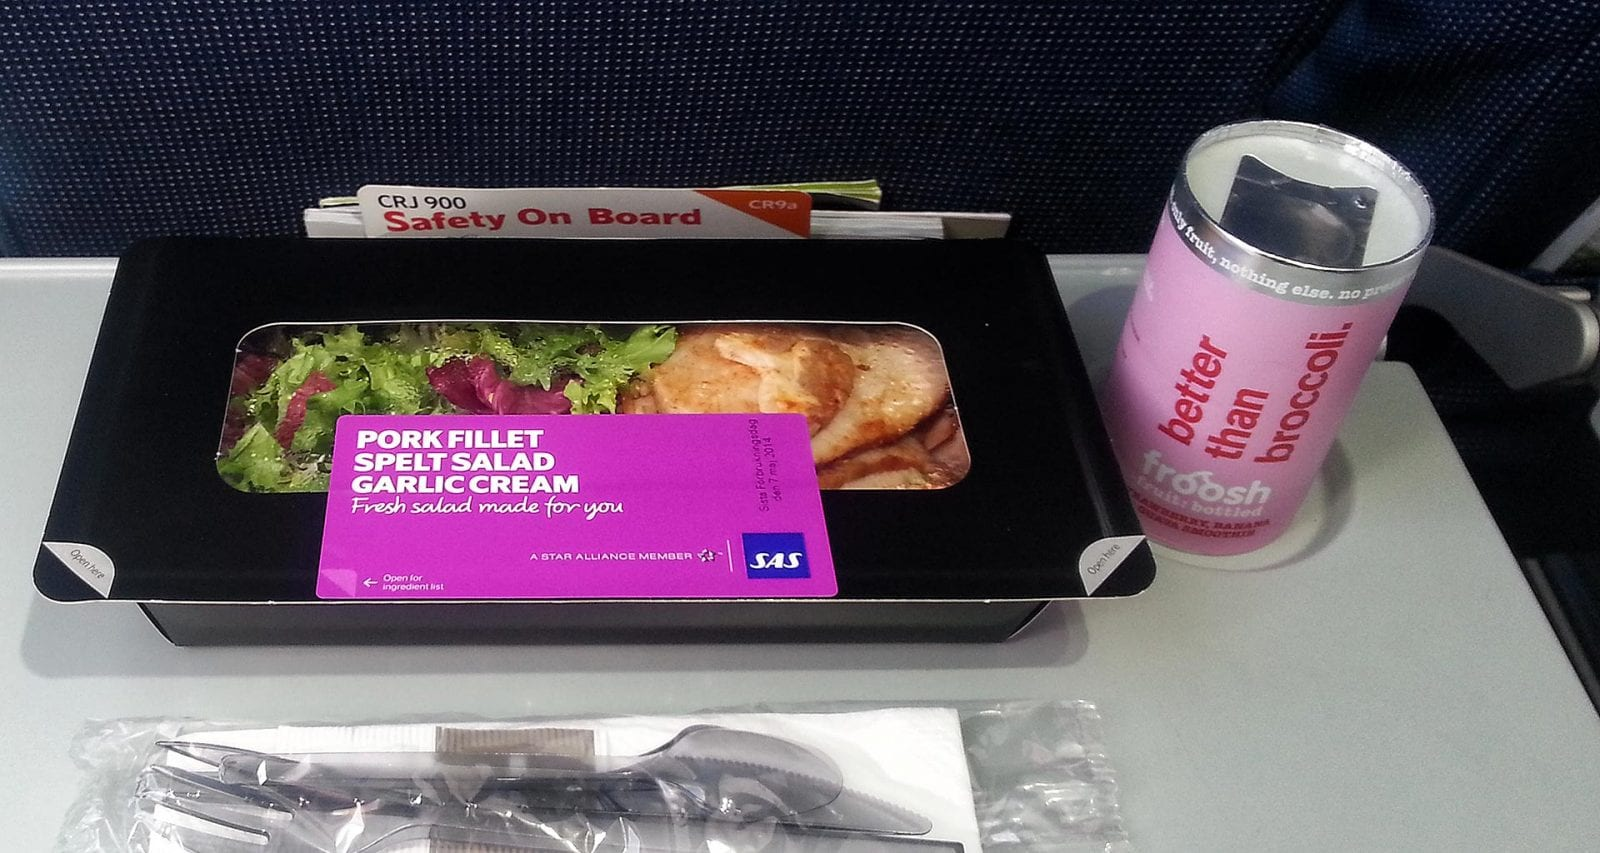 SAS inflight meals economy class pork fillet salad